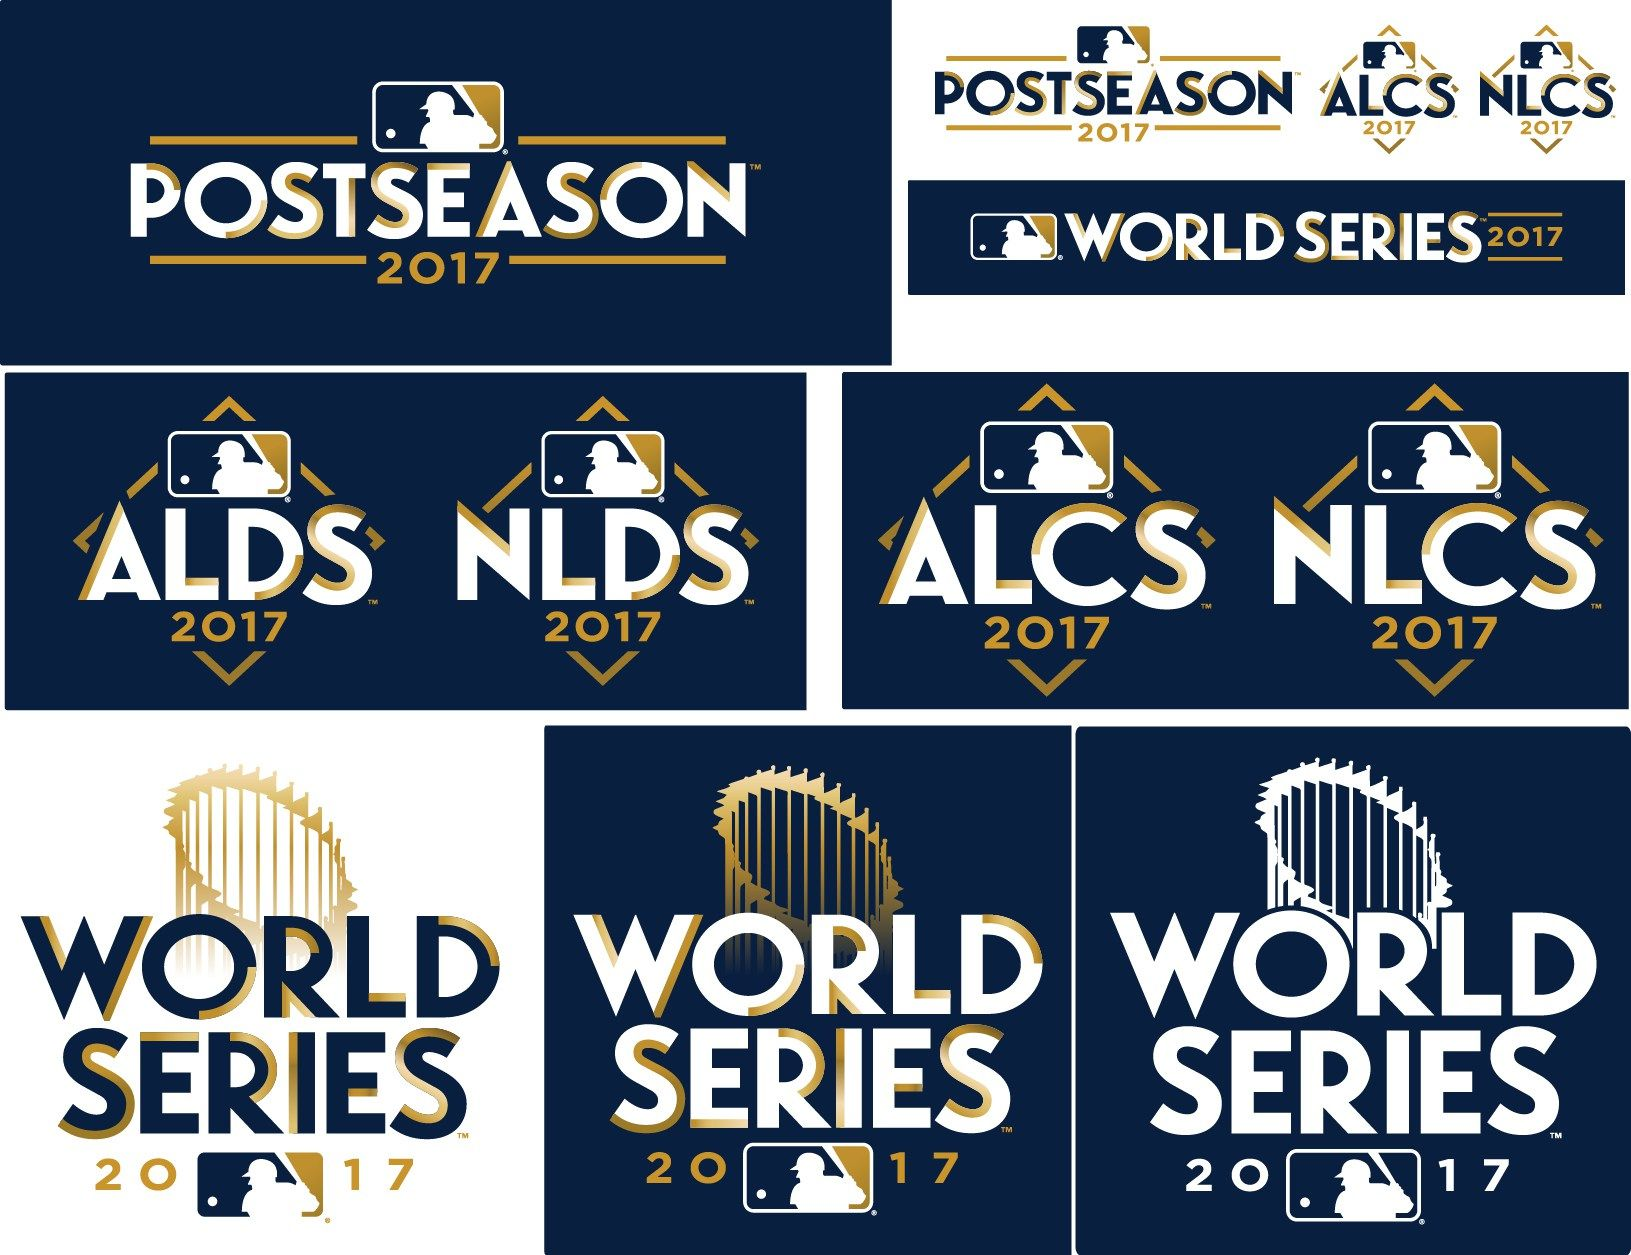 Confirmed Mlb Postseason Schedule Myfantasysportstalk Mlb Postseason Postseason Mlb